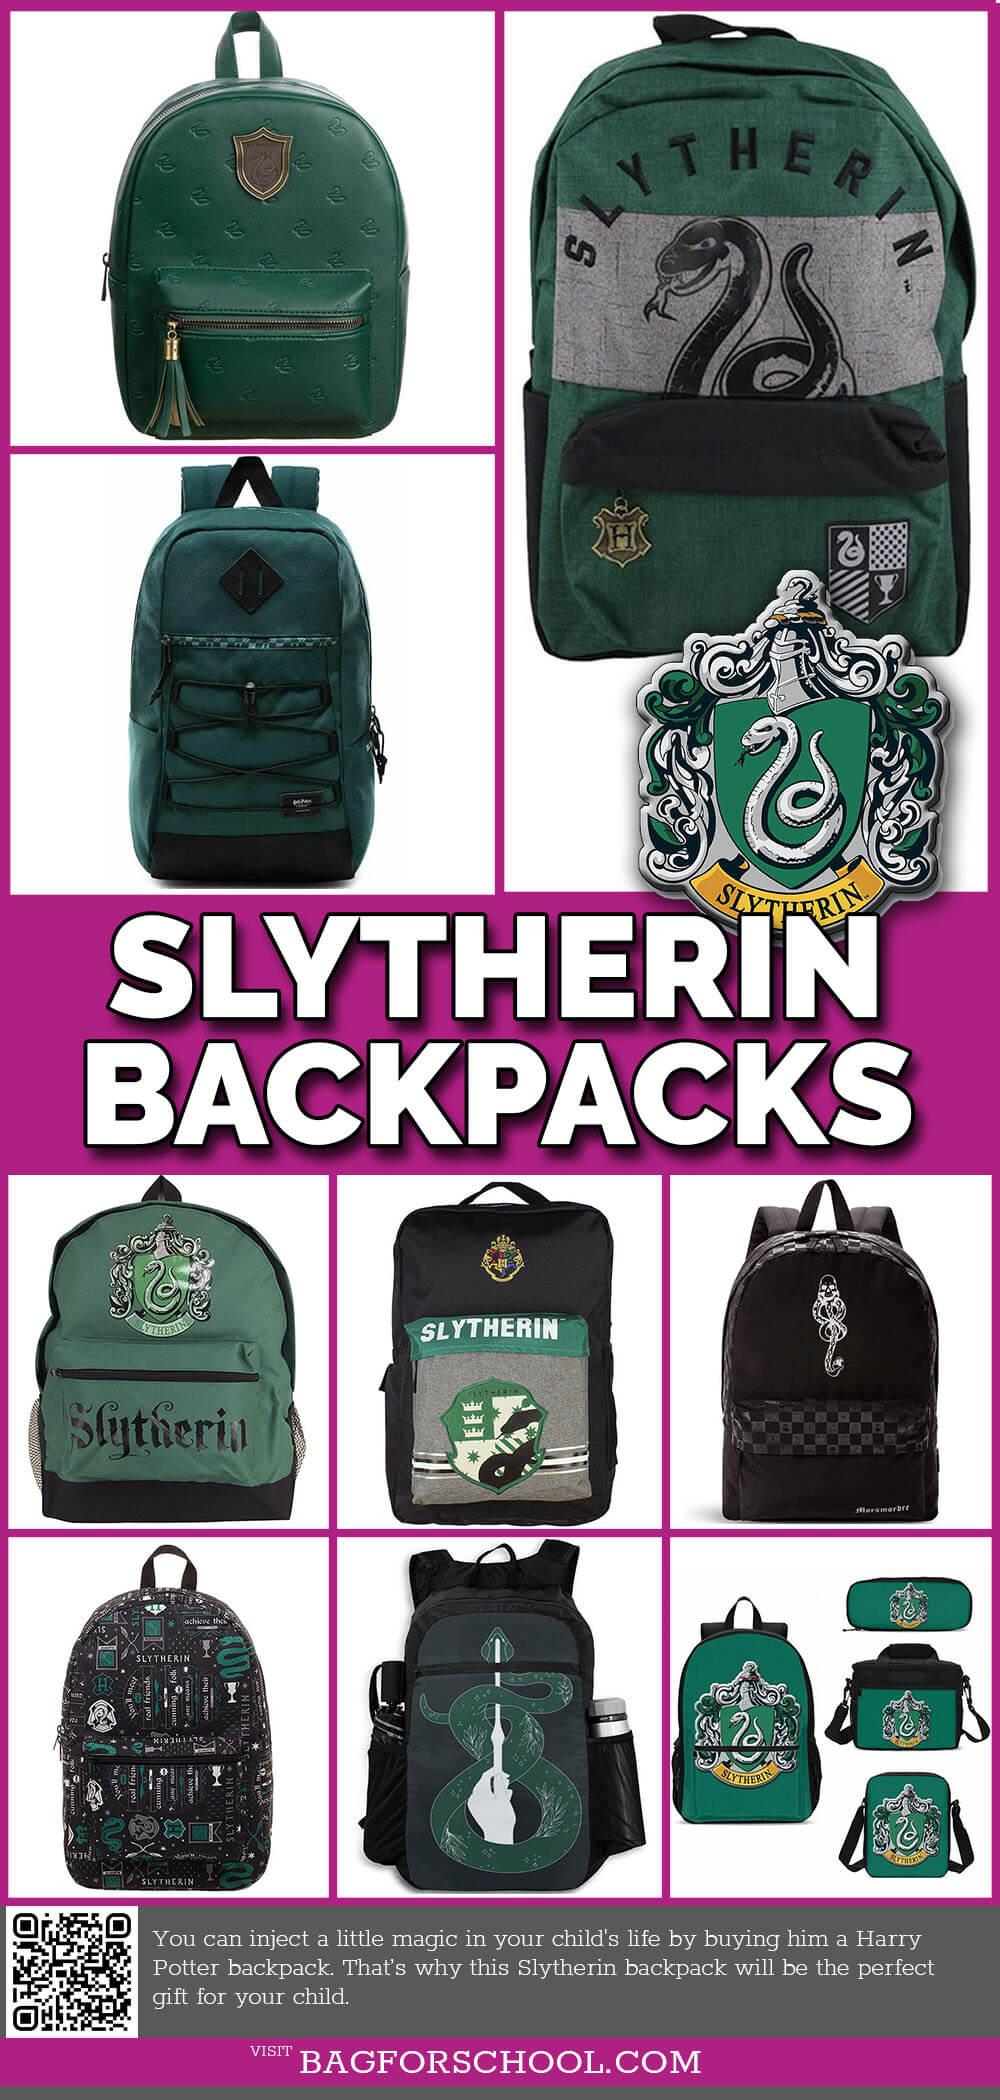 Slytherin Backpacks